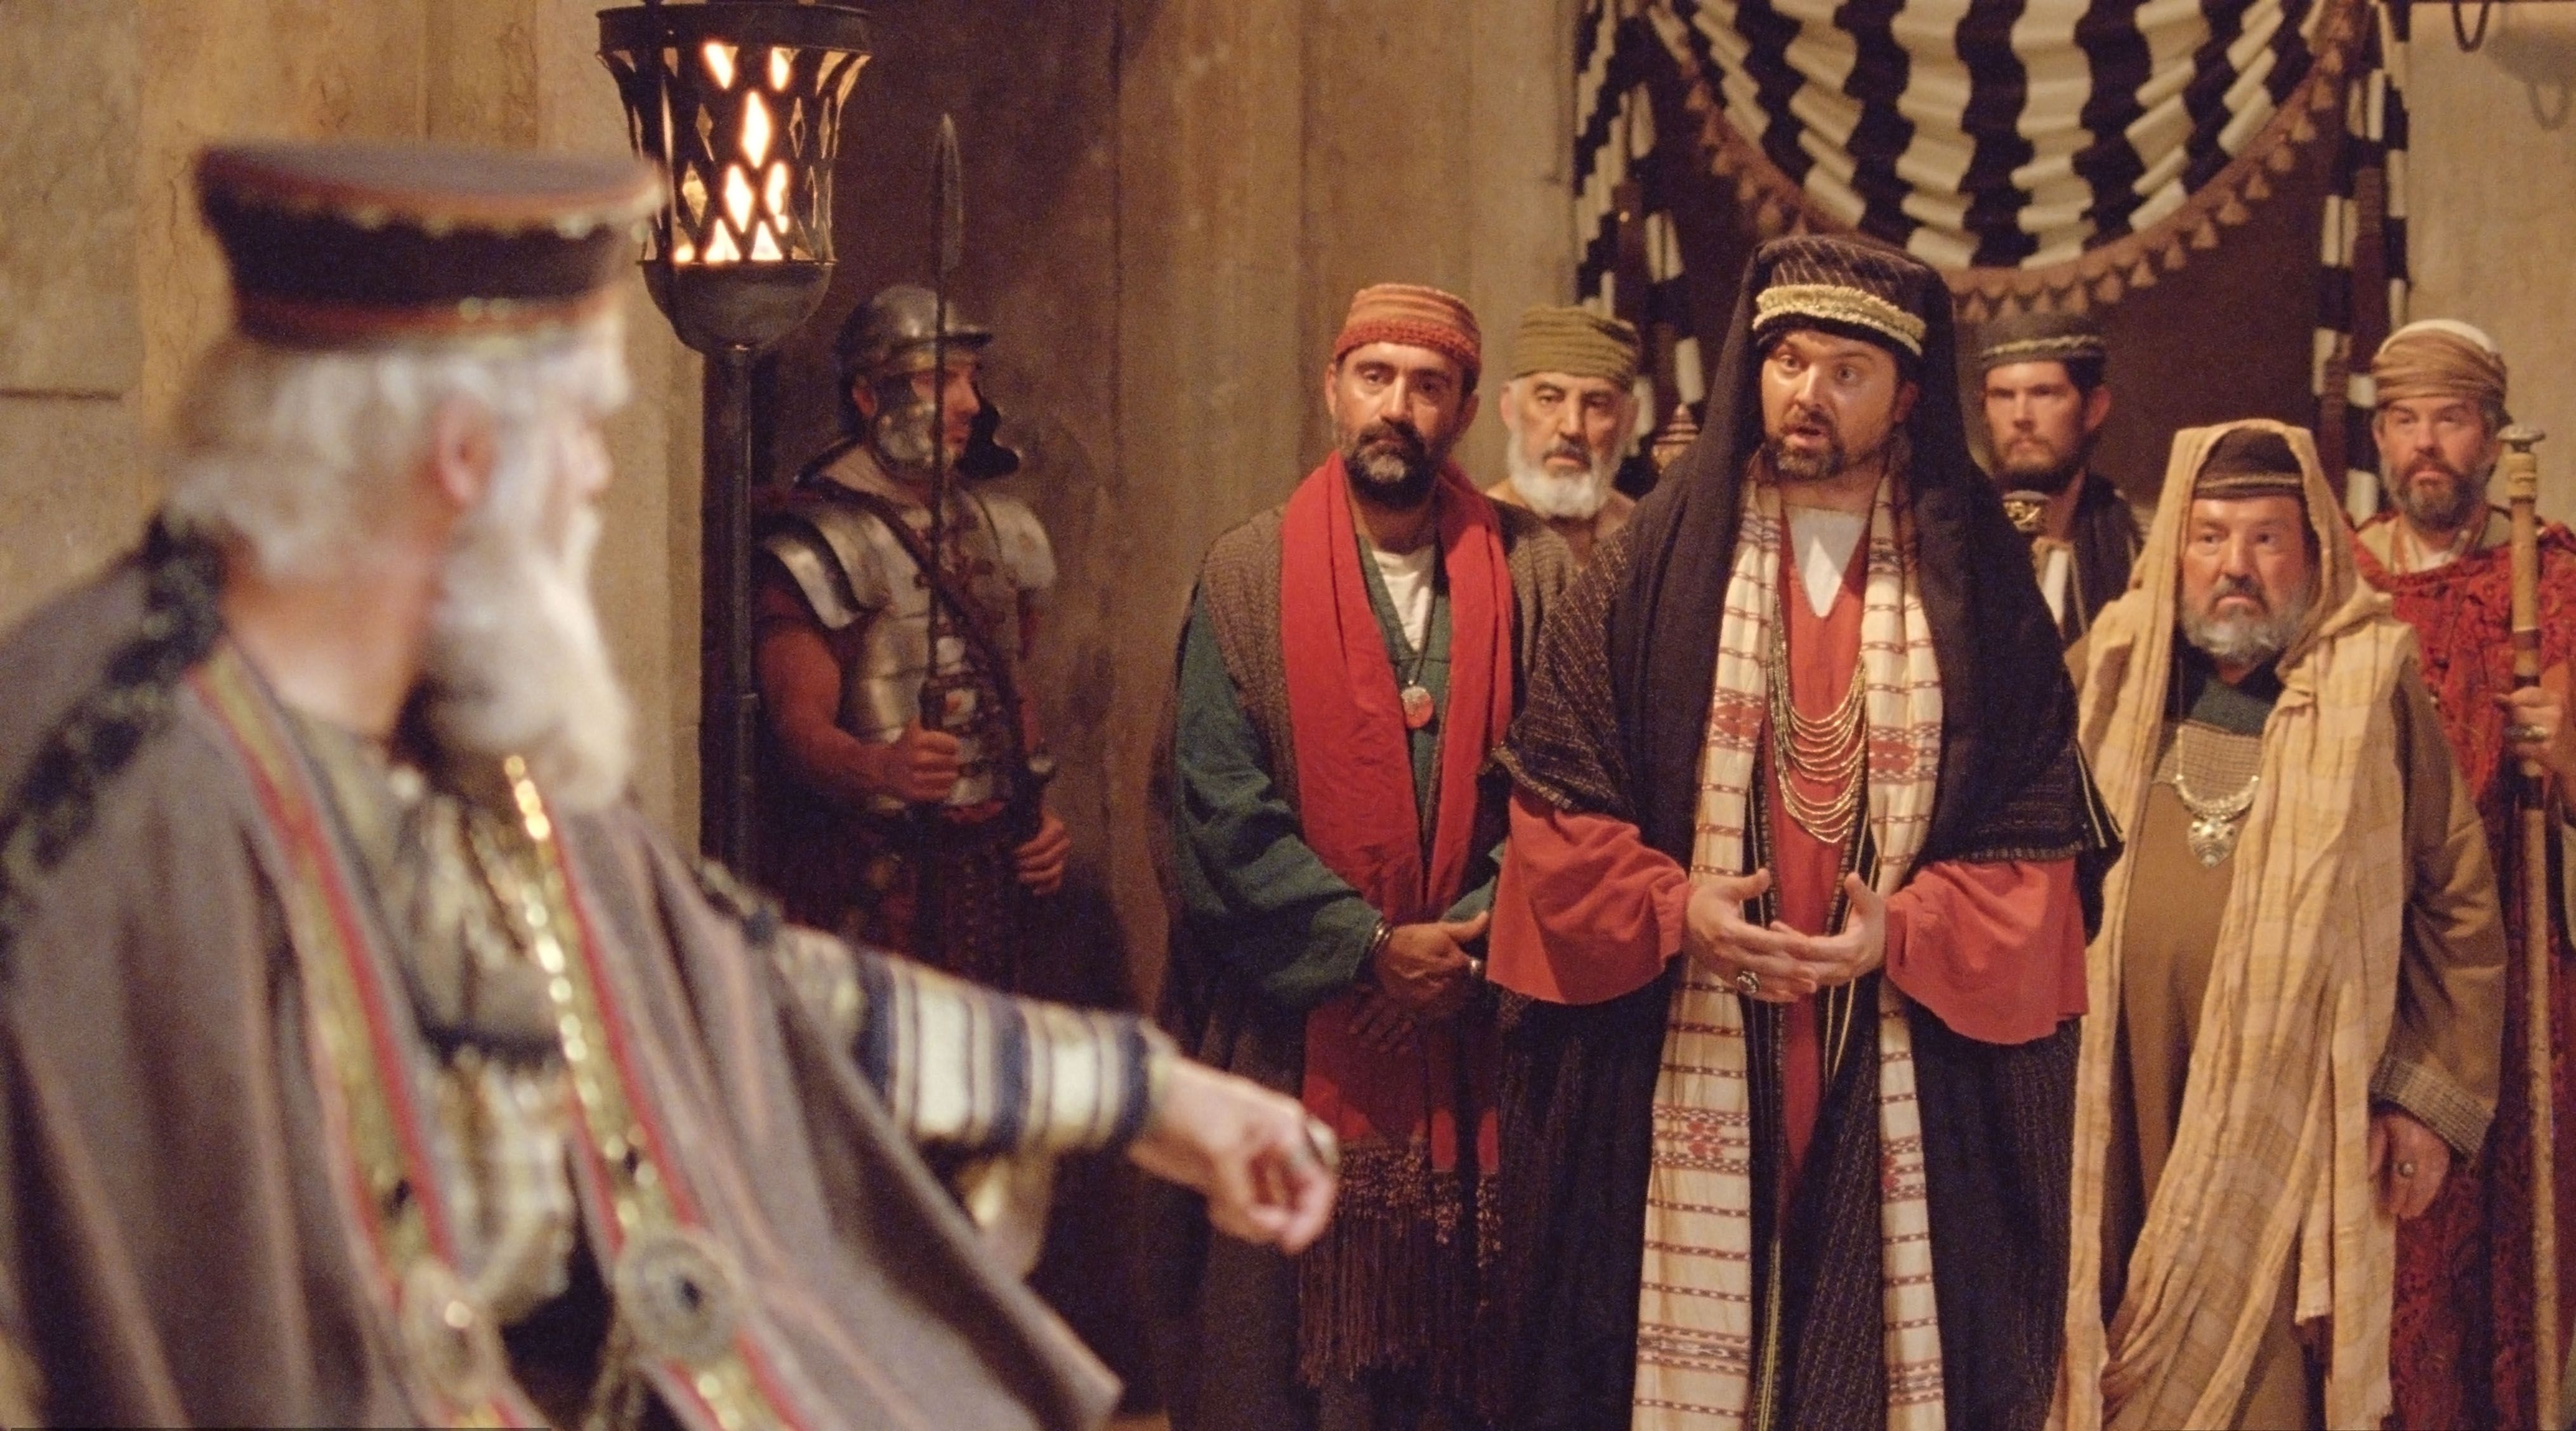 The chief priests and scribes of King Herod tell him of the prophecies of Christ's birth.